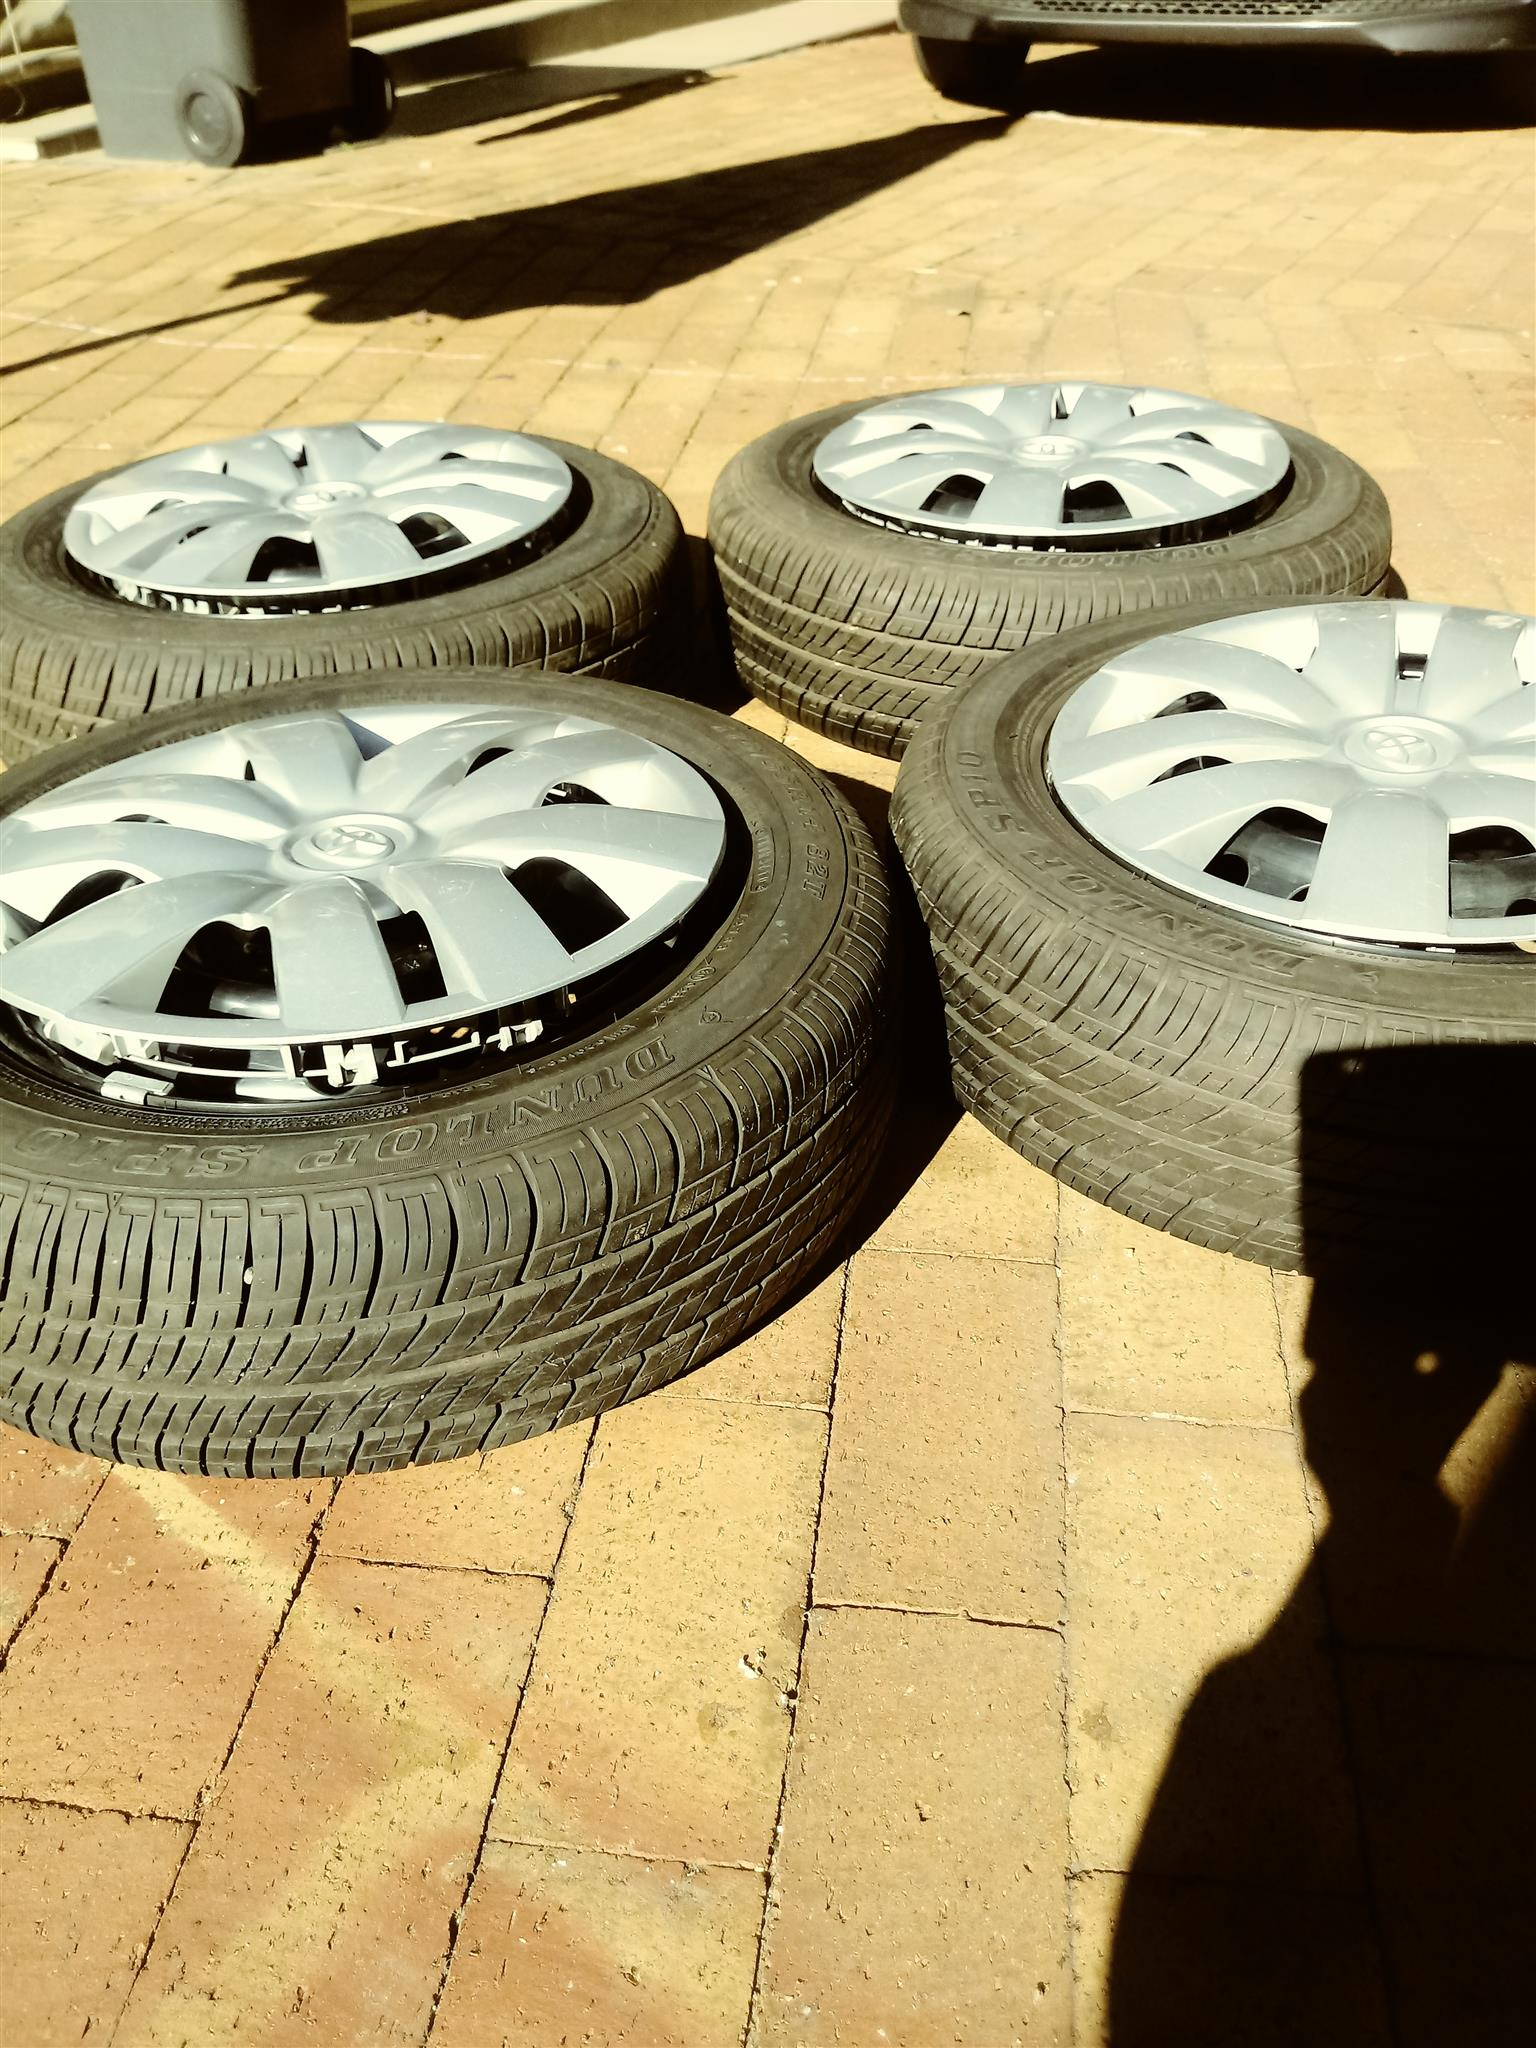 Toyota Yaris Rims and Tyres